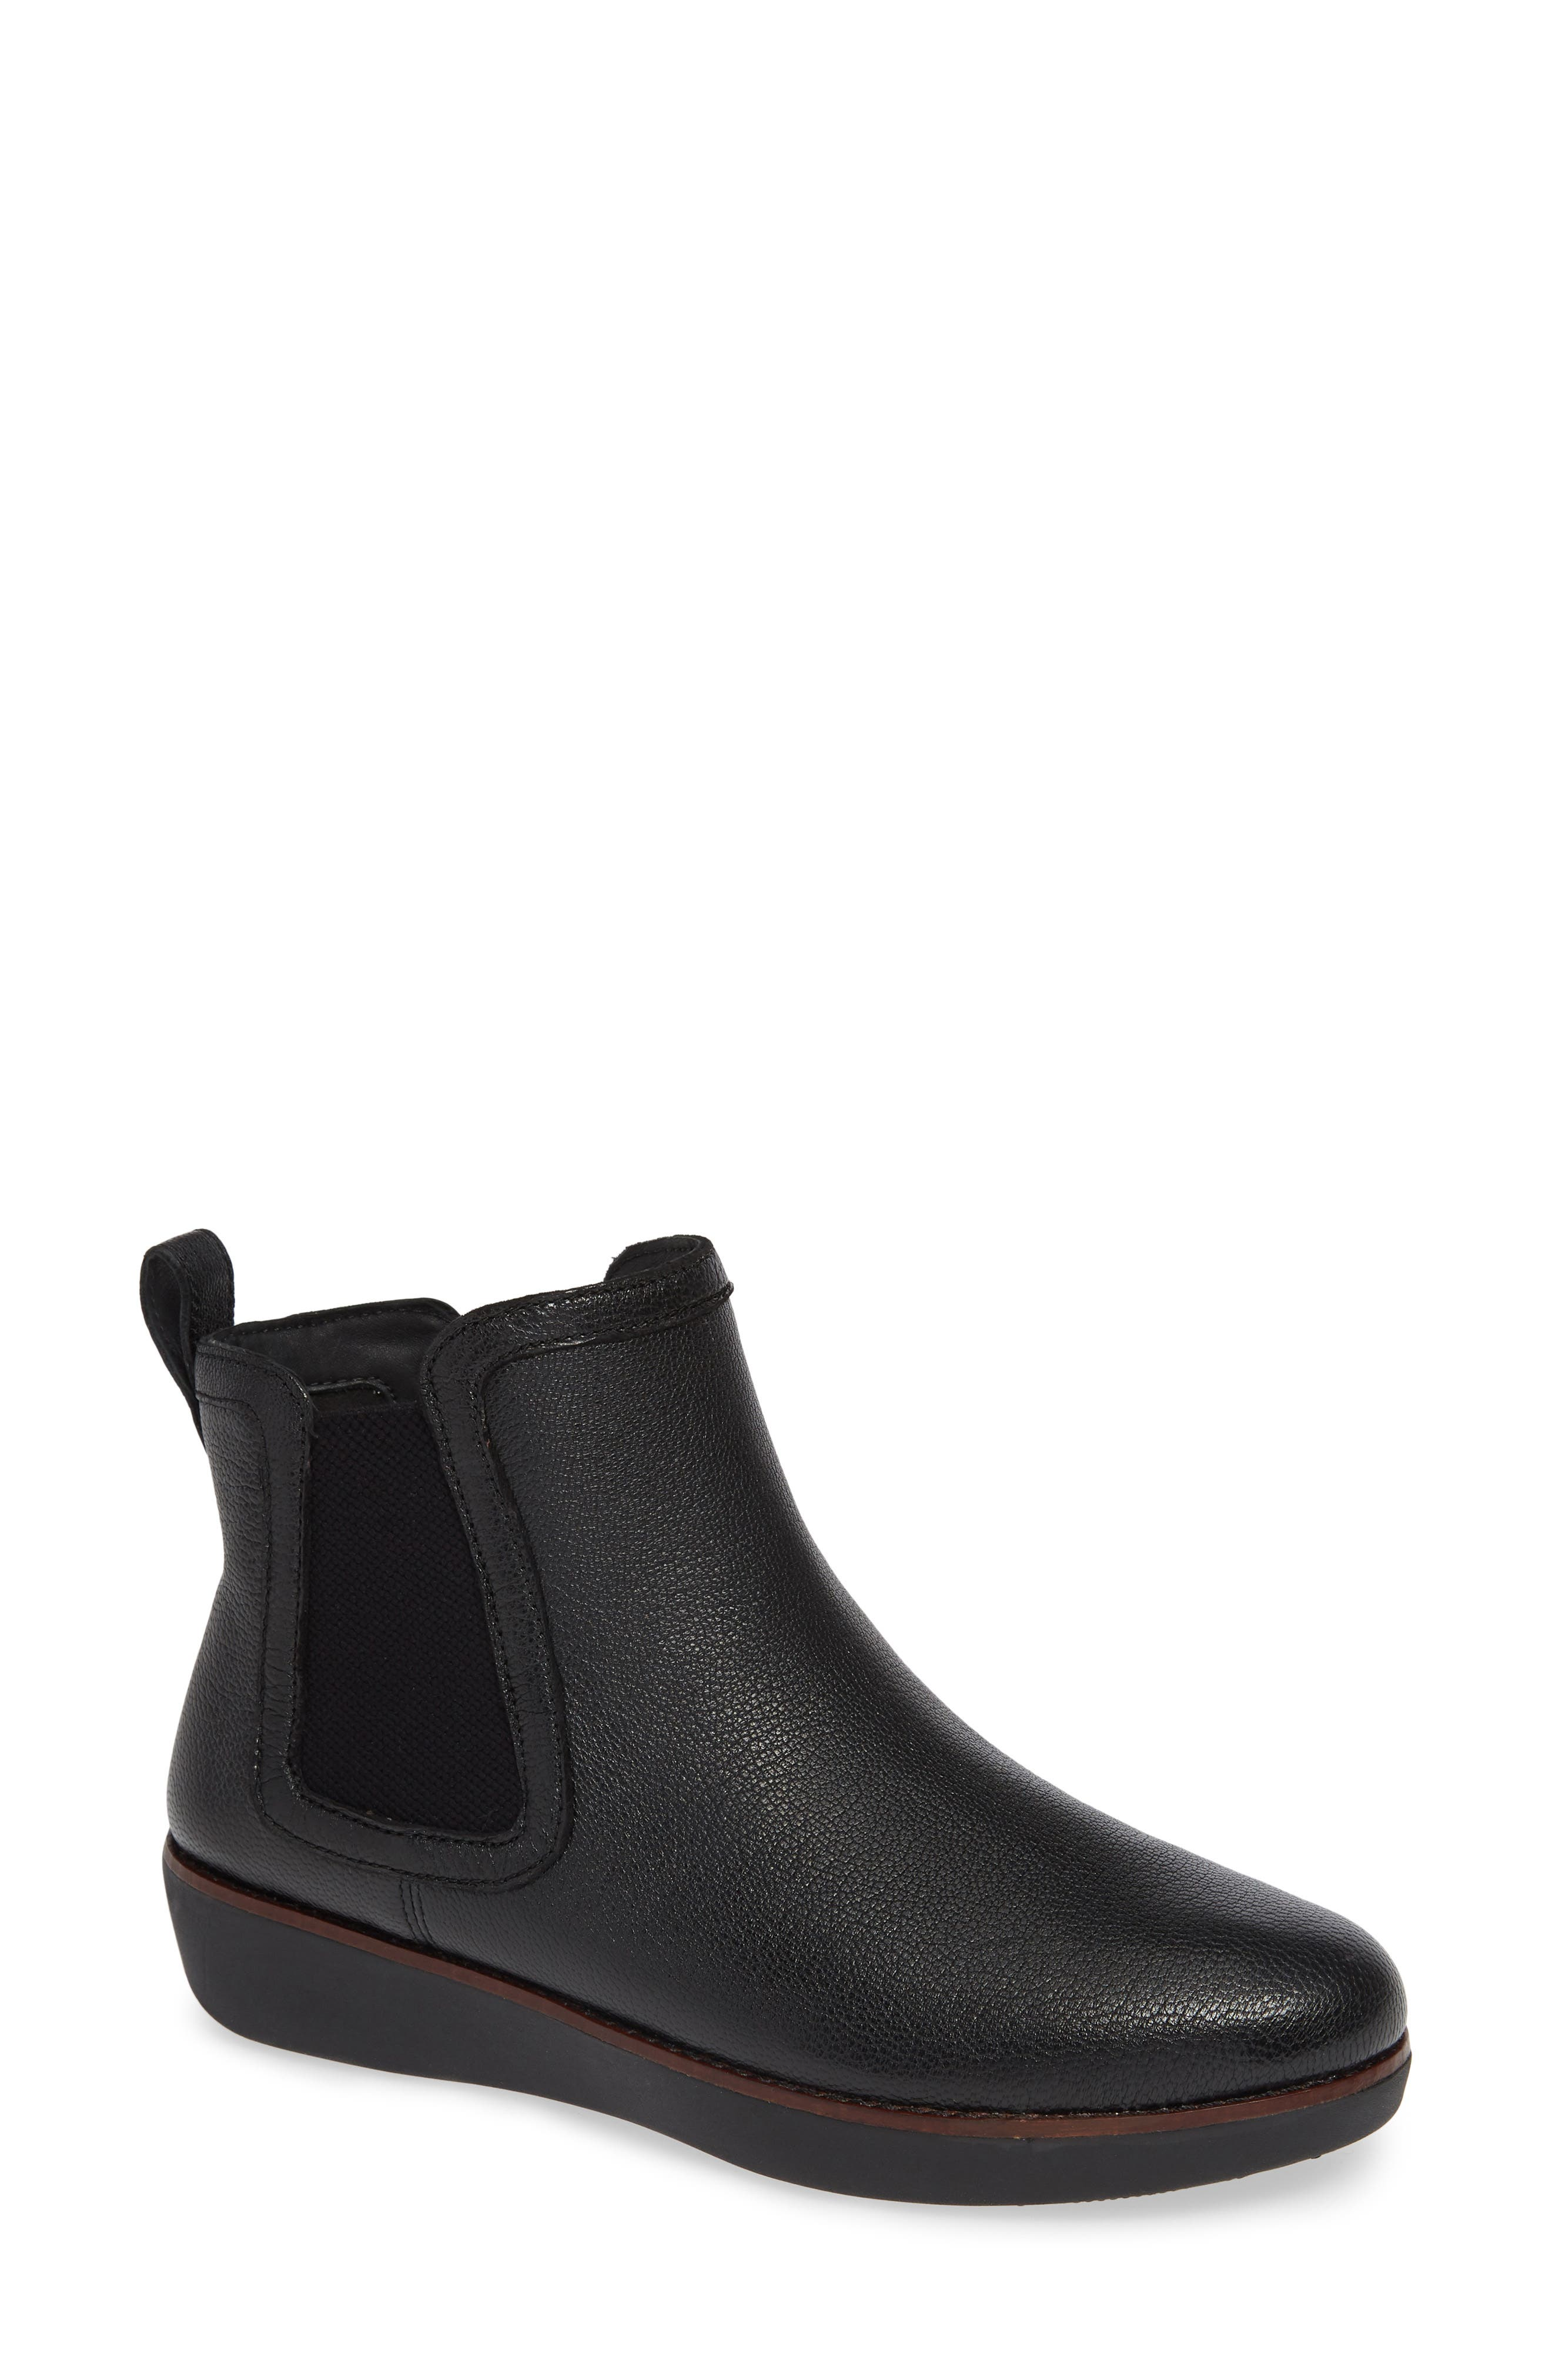 Fitflop Chai Bootie, Black